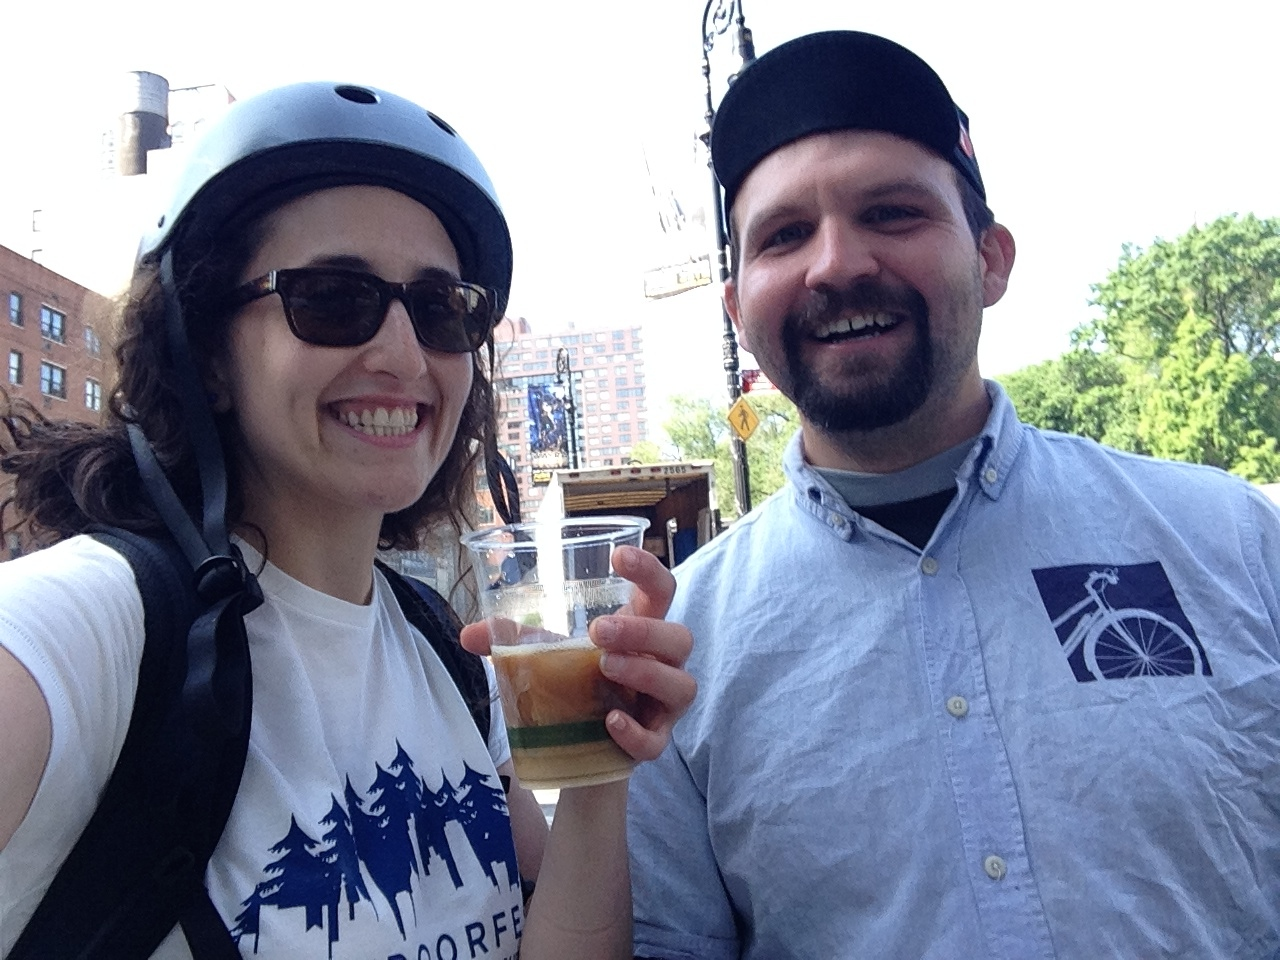 OutdoorFest's Sarah Knapp drinks some fresh ice coffee with the Union Square Transportation Alternatives team.